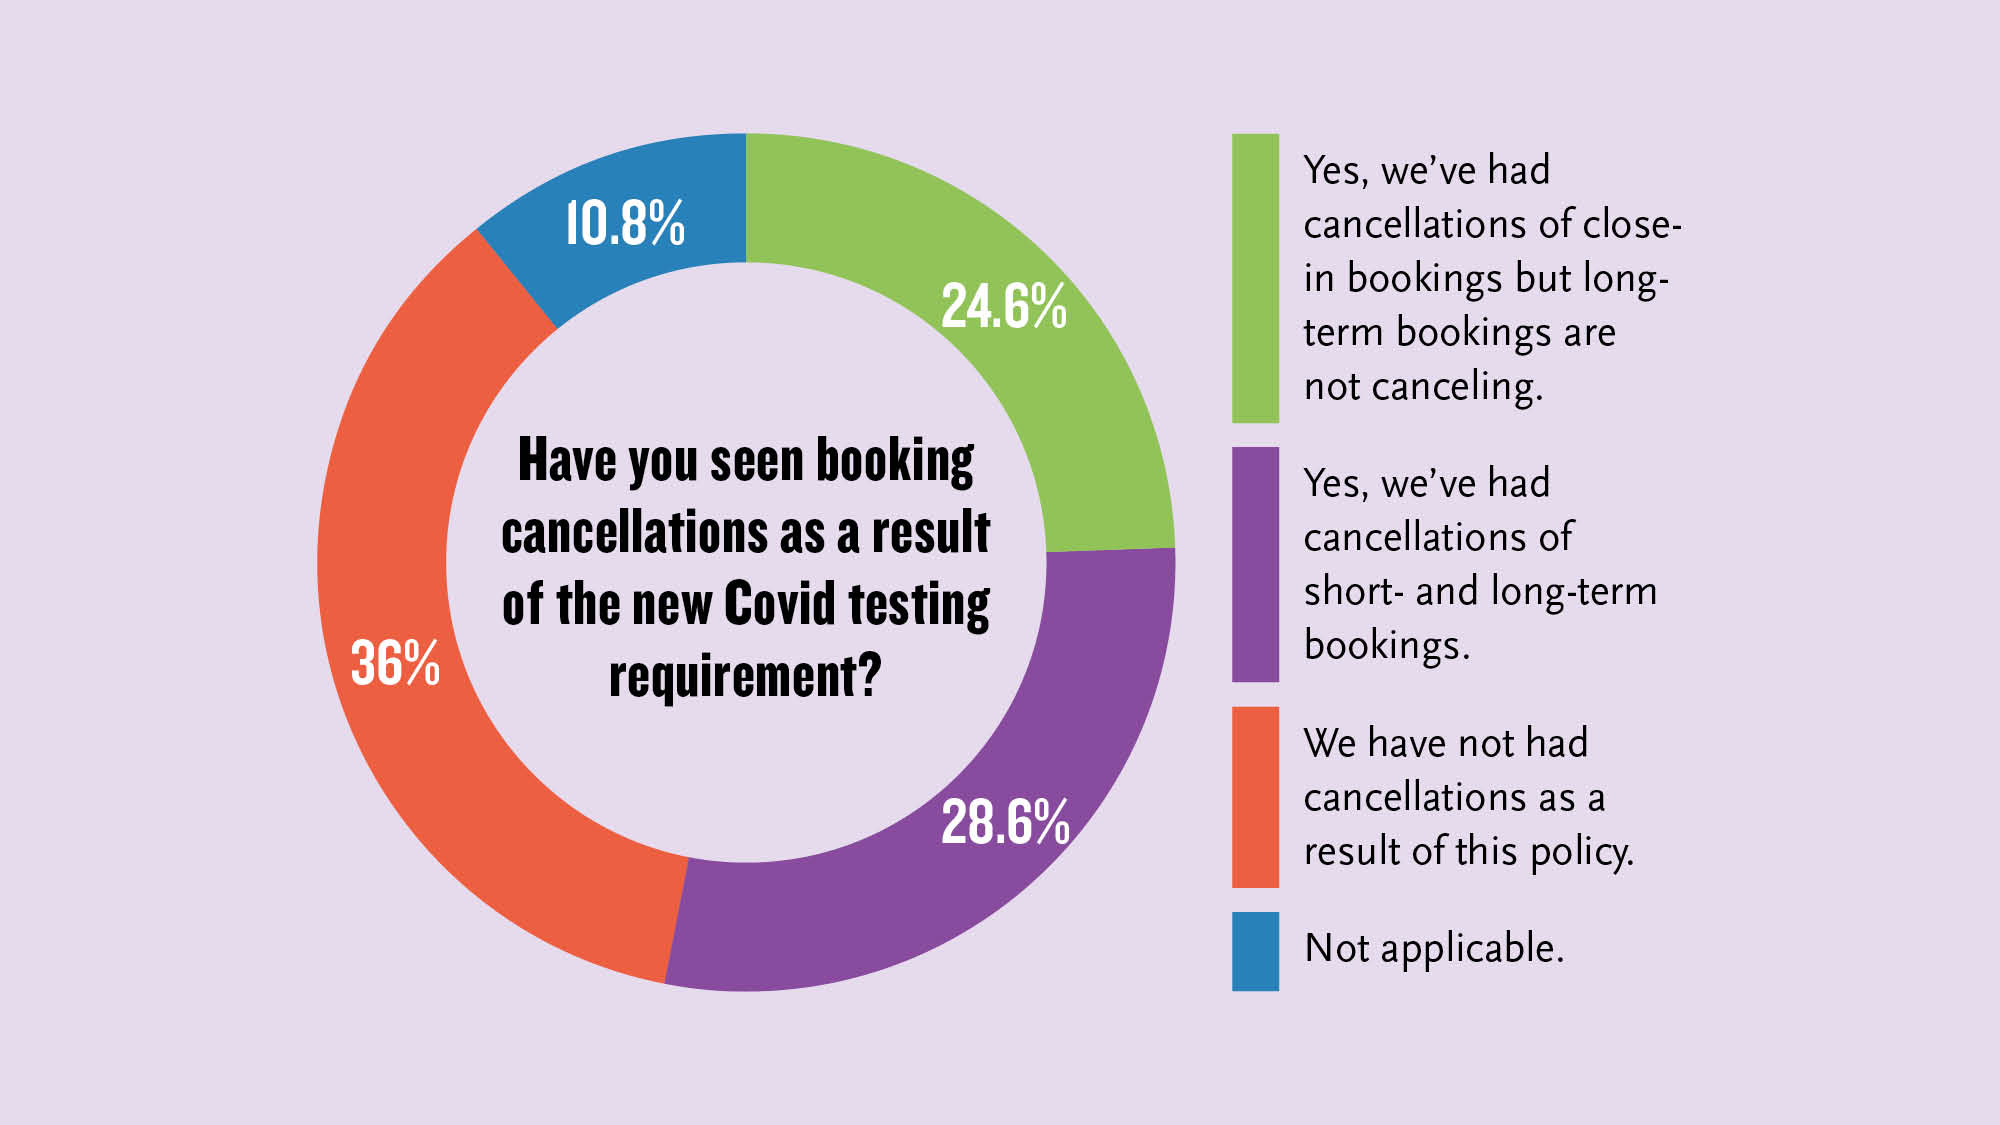 At least half of the respondents have had cancellations as a result of the new requirements.